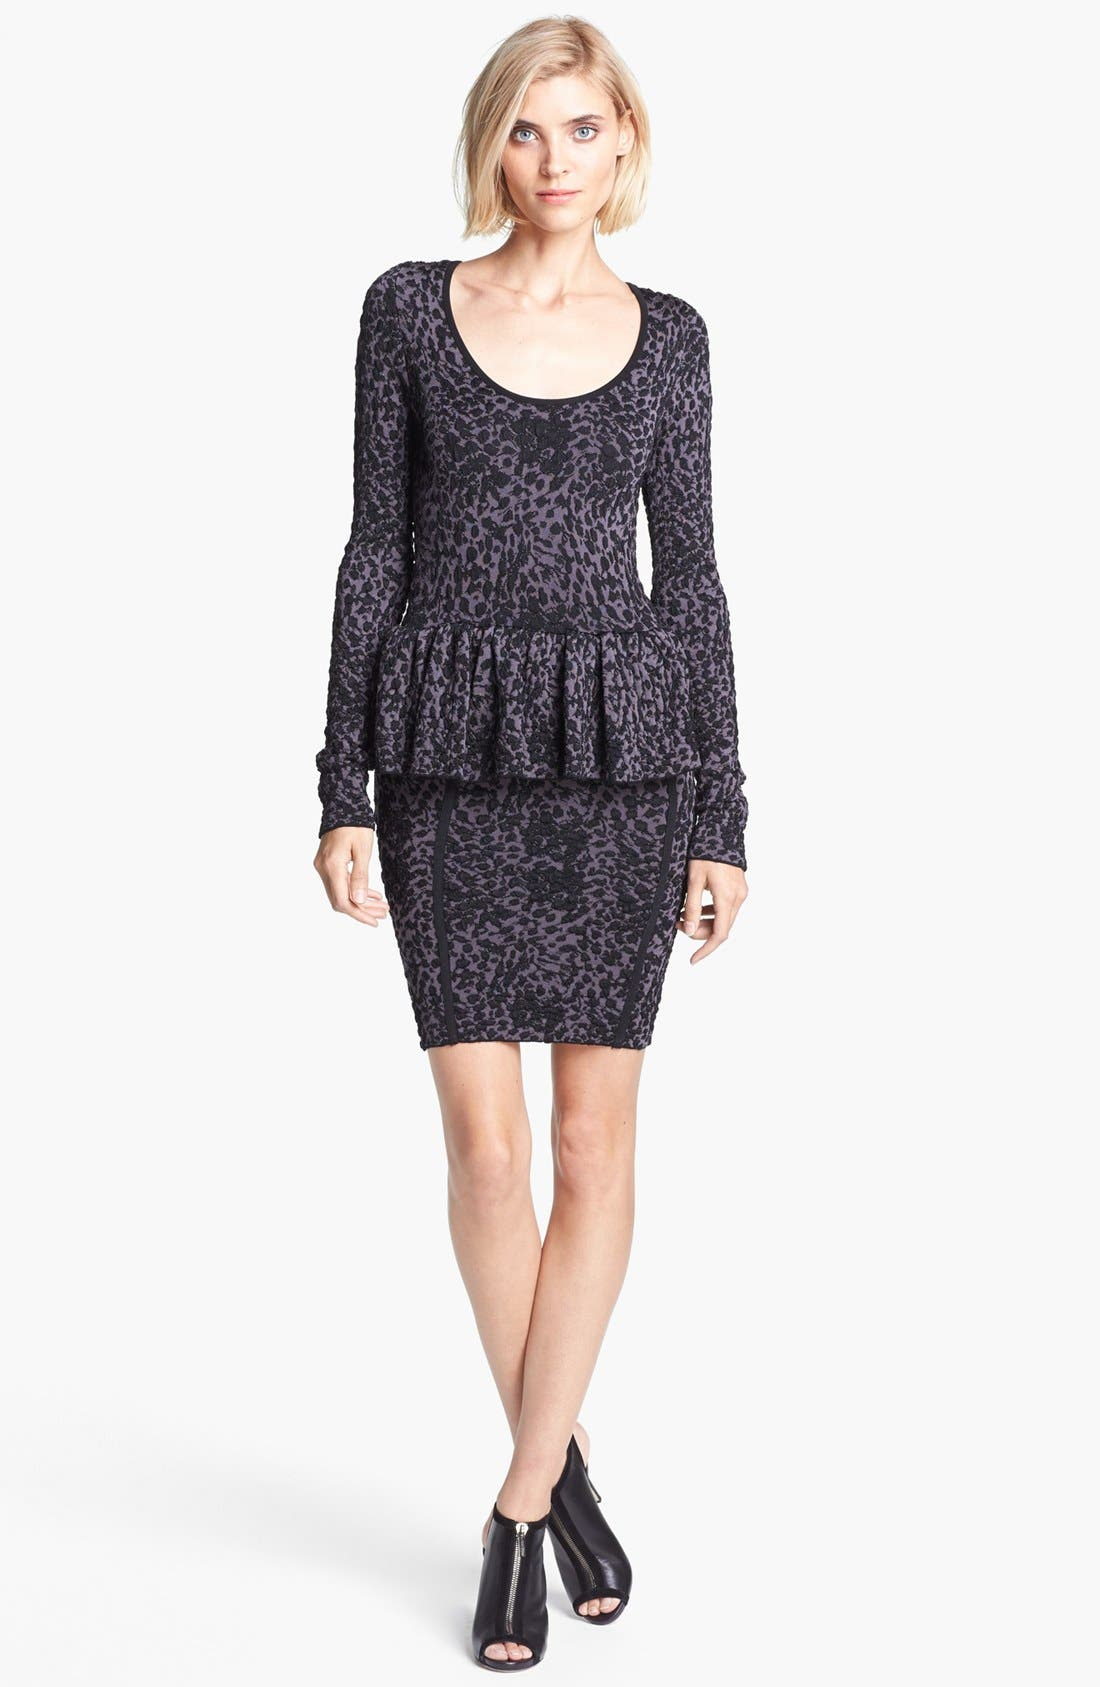 Alternate Image 1 Selected - Jay Godfrey Leopard Jacquard Knit Peplum Dress